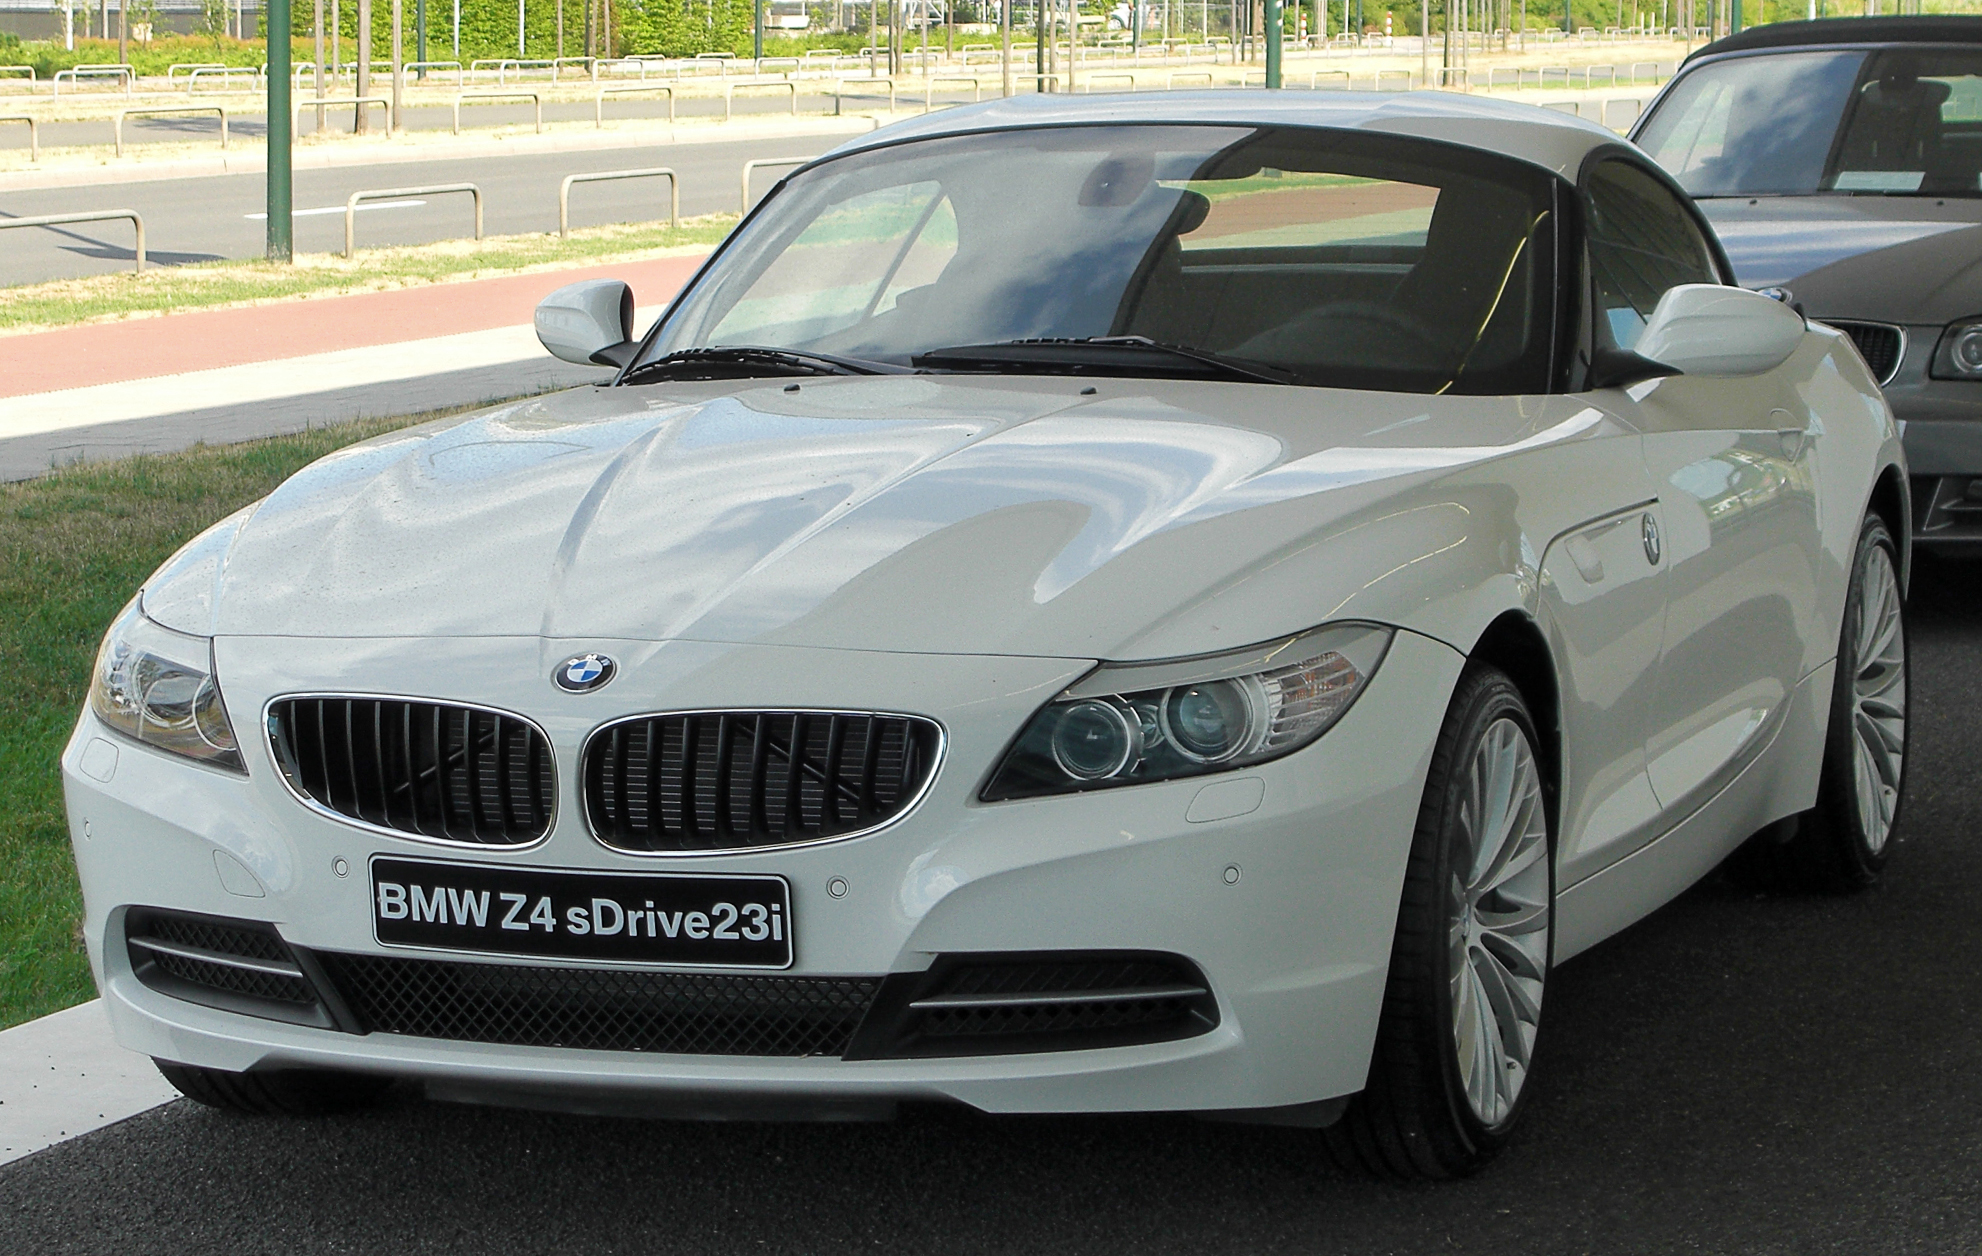 file bmw z4 sdrive23i e89 front wikimedia. Black Bedroom Furniture Sets. Home Design Ideas